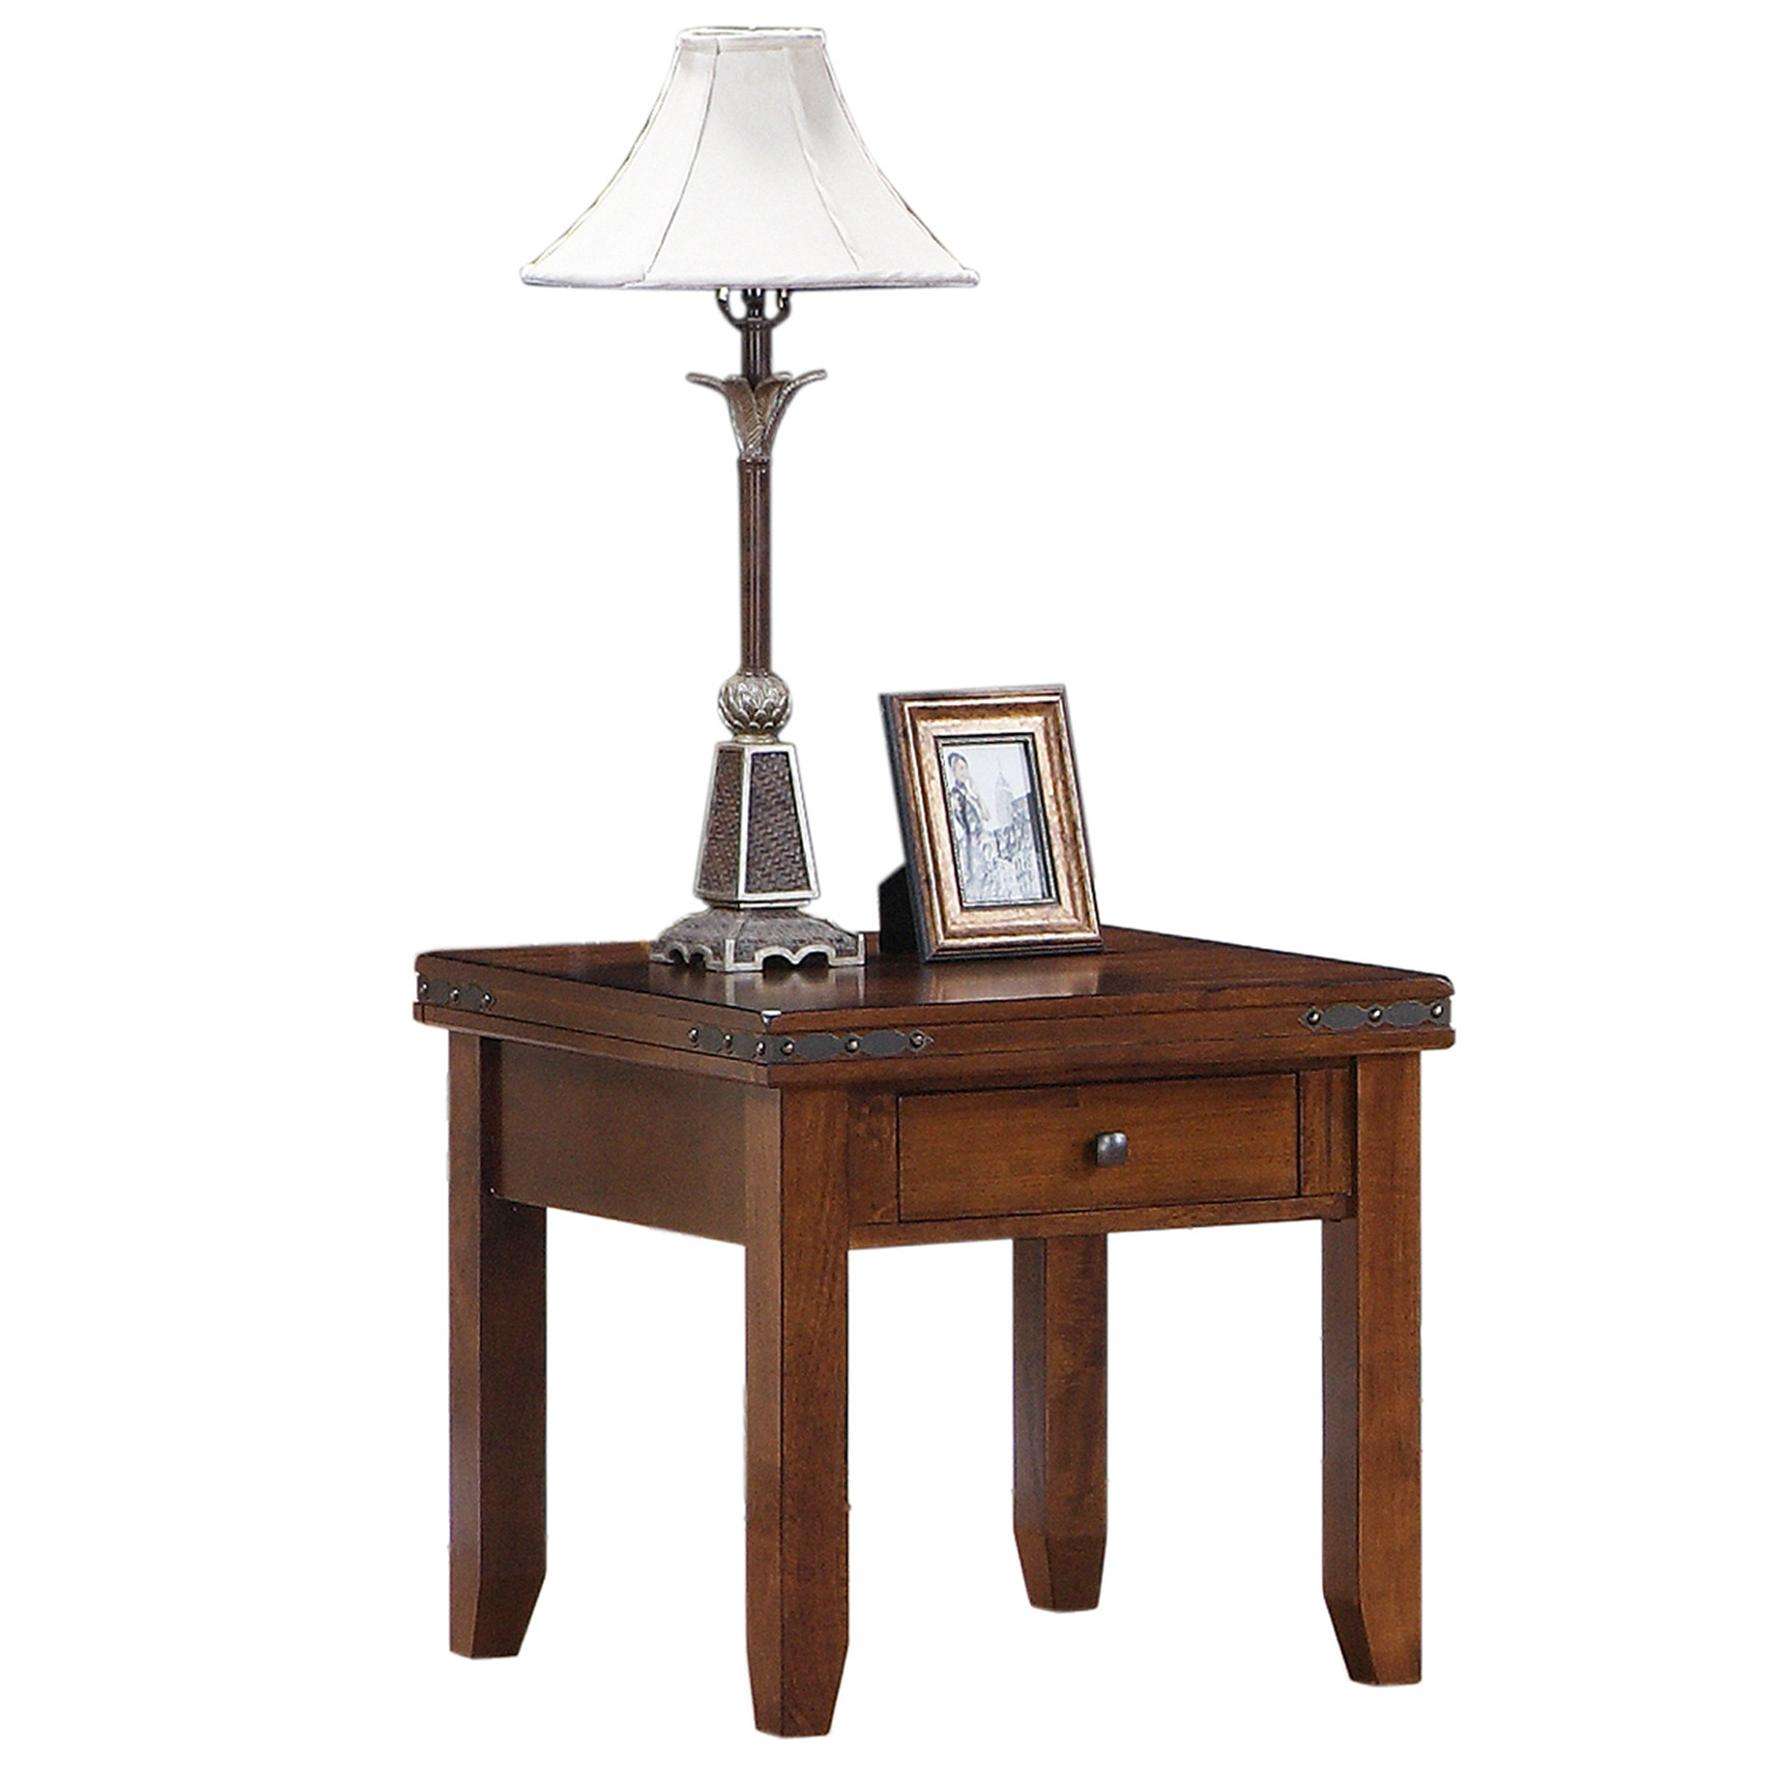 Layton End Table by HH at Walker's Furniture